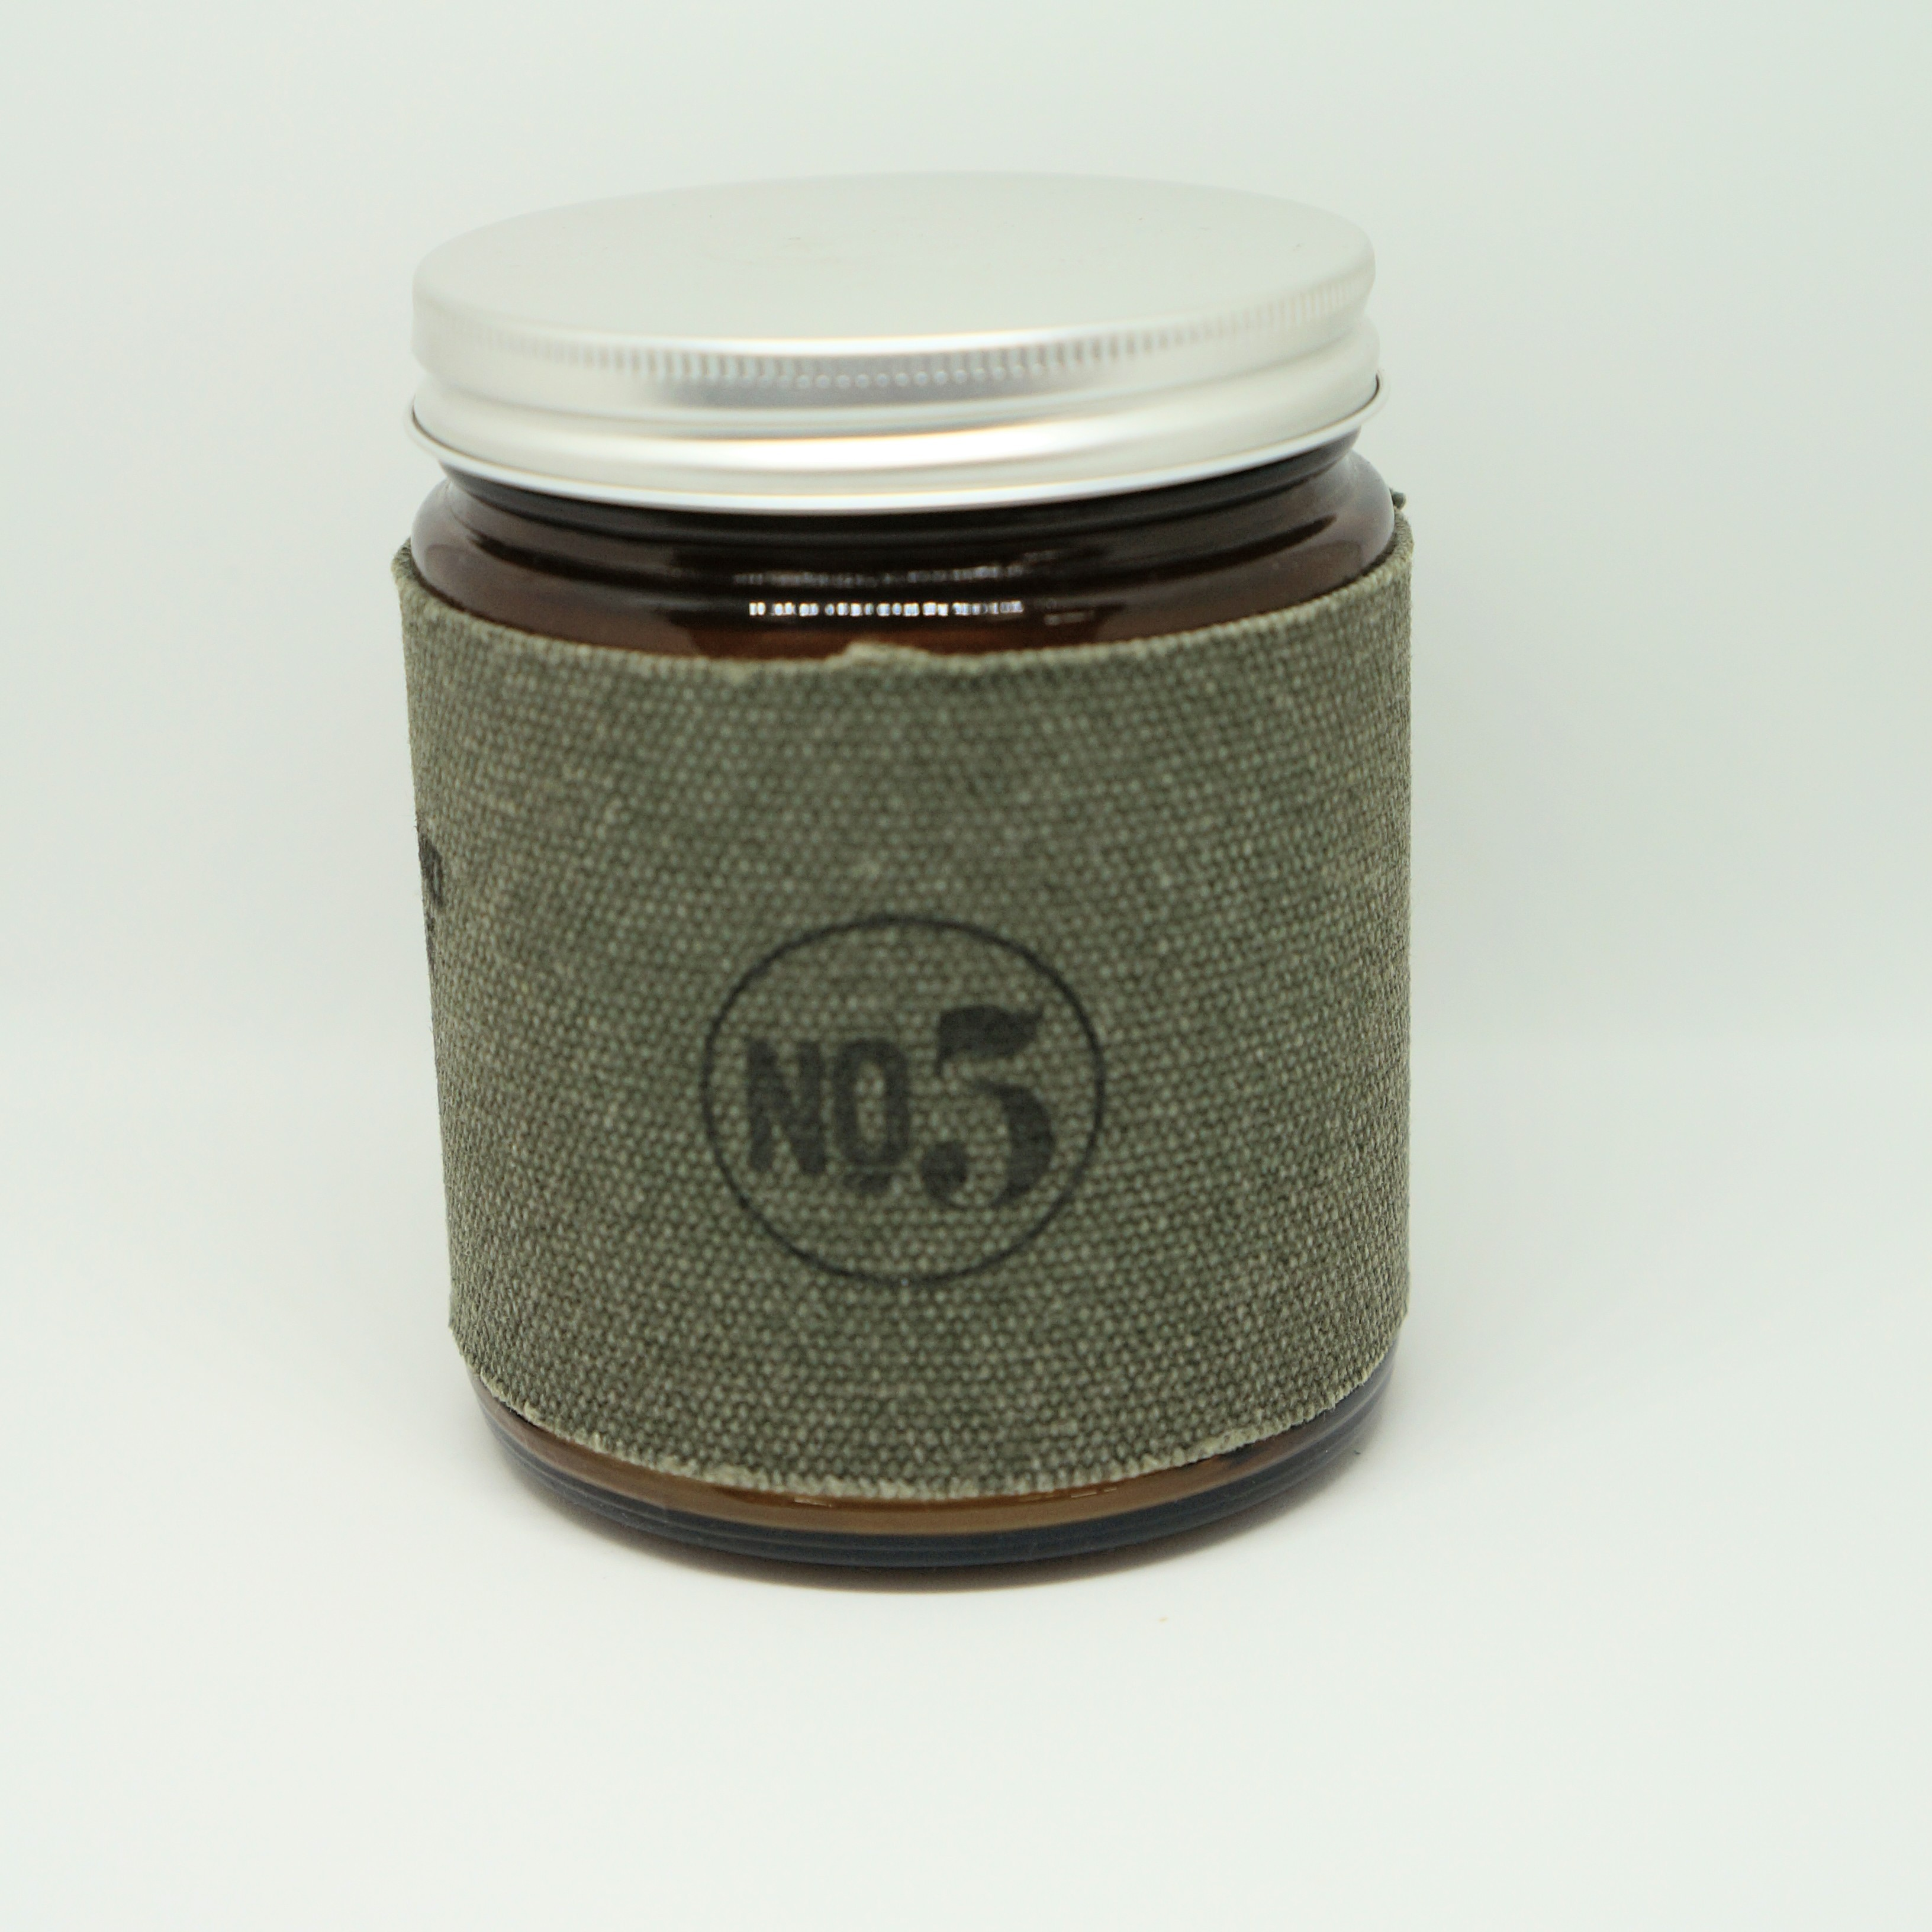 9oz Amber Jar Candle -SEA SALT- キャンドル Candles - 画像2